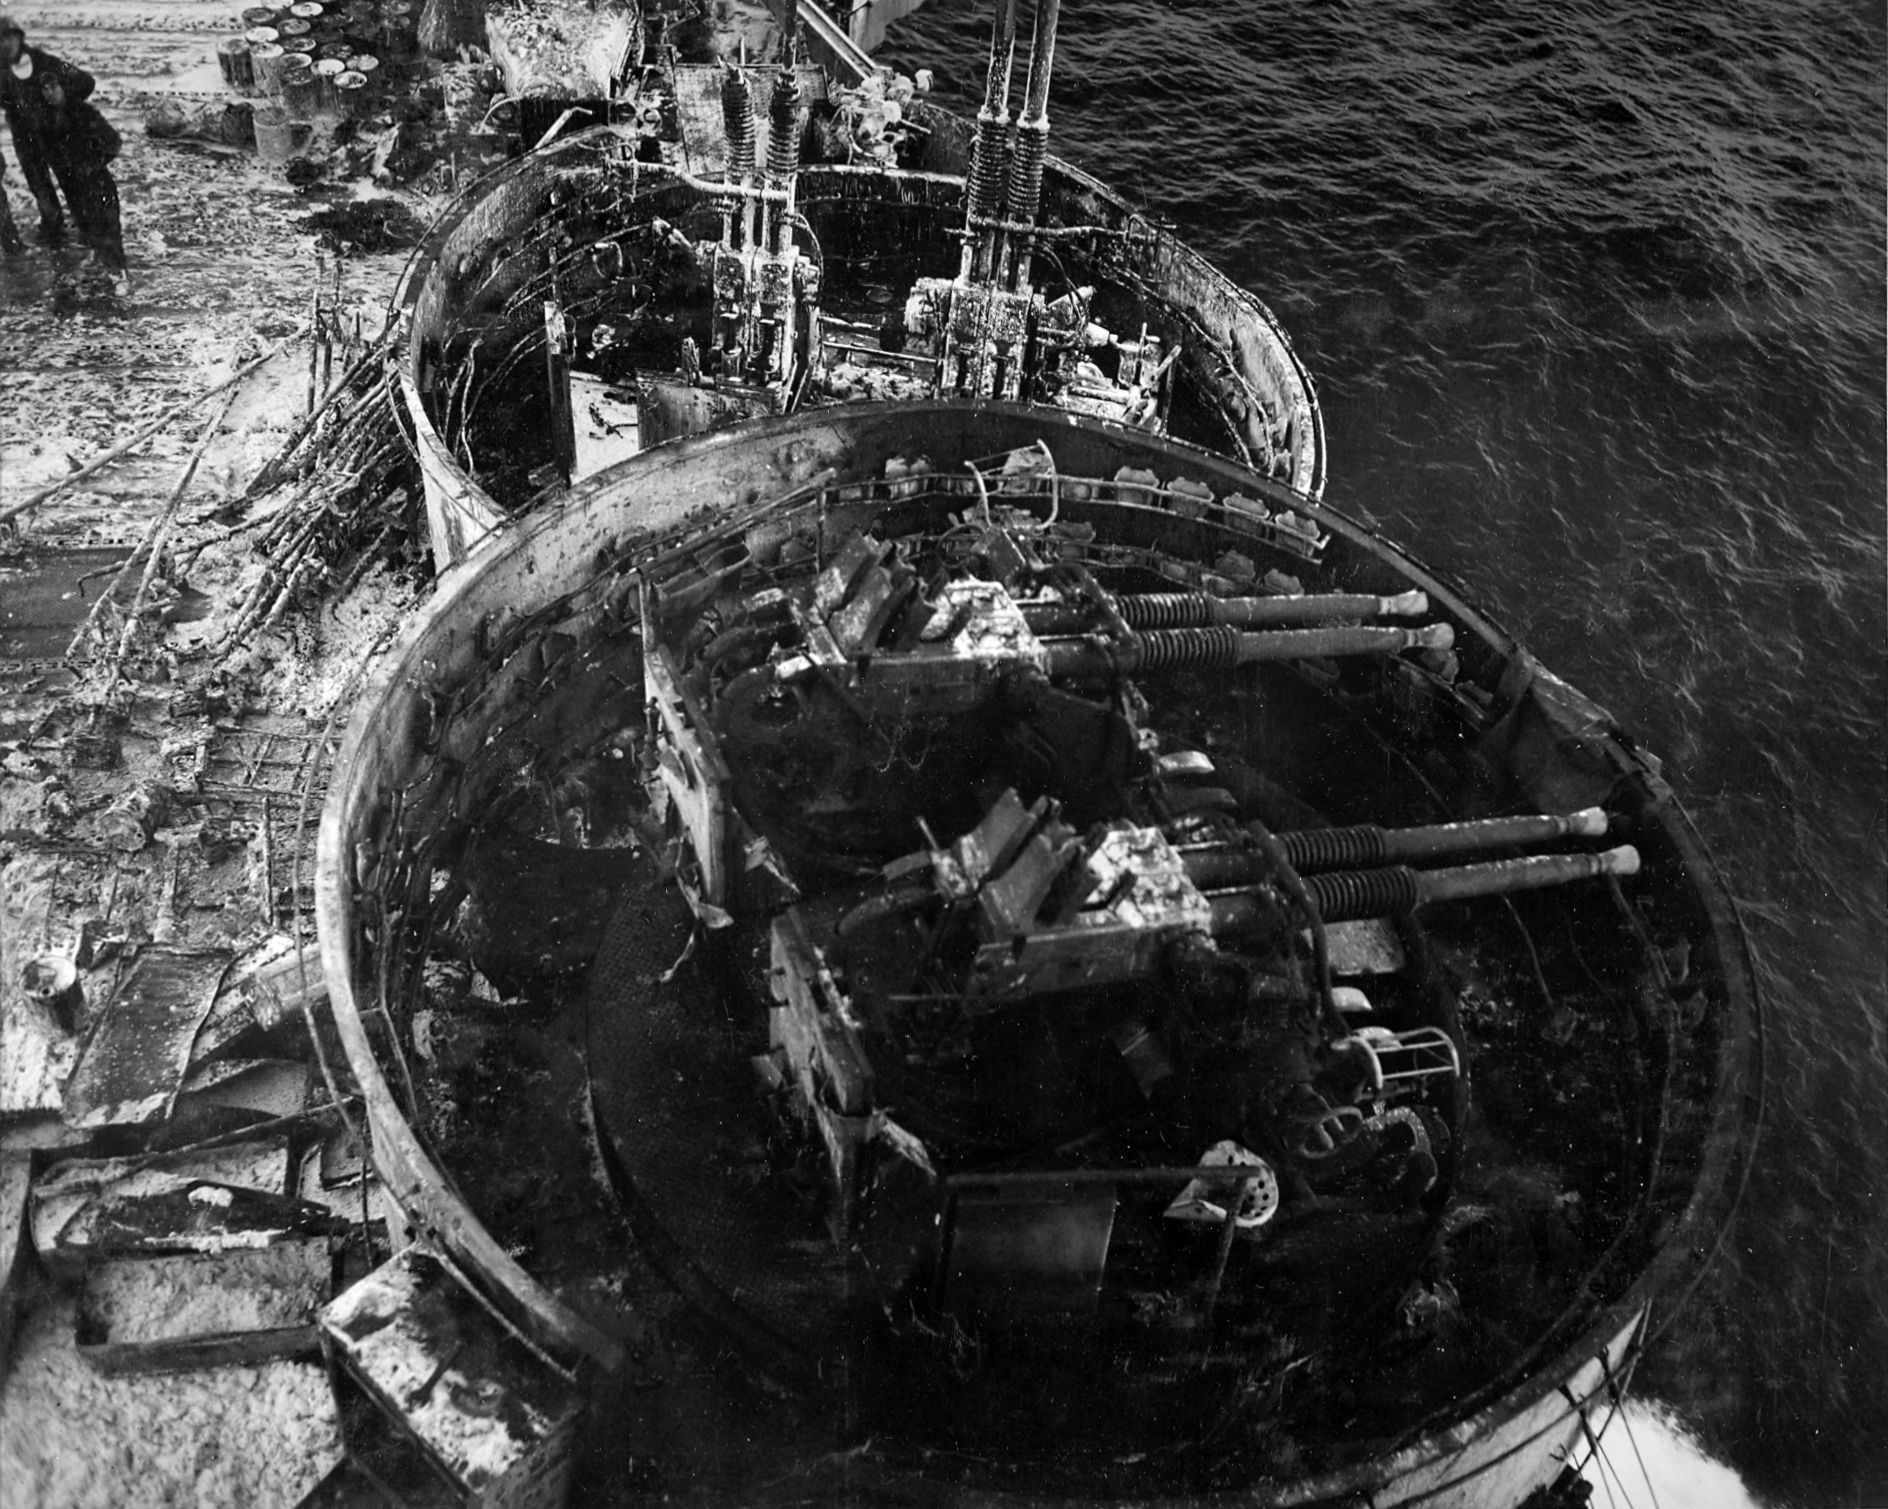 wrecked 40mm bofors batteries abroad the aircraft carrier uss enterprise following a kamikaze